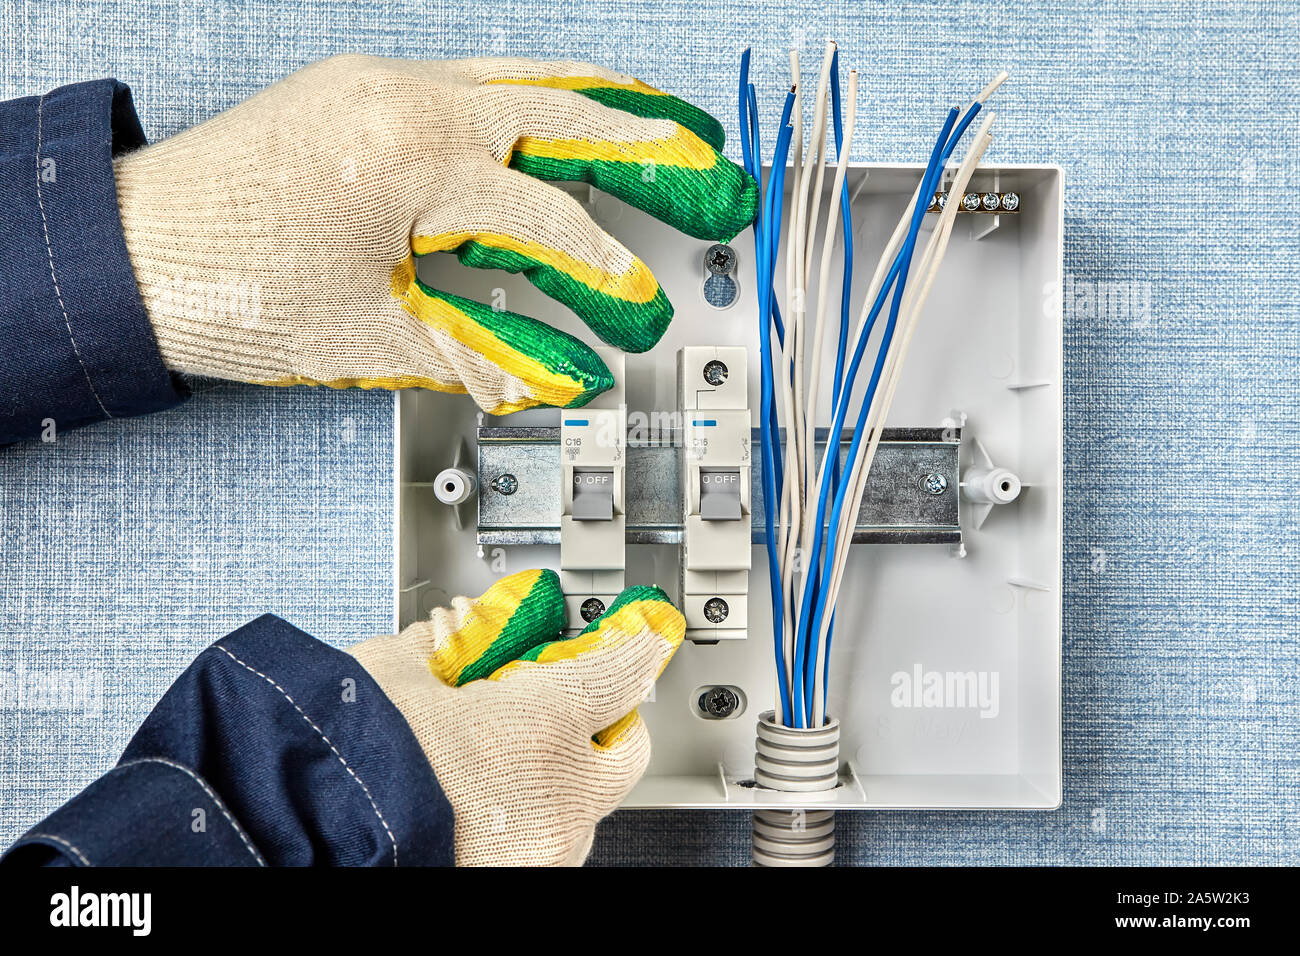 home fuse box wiring technician installs a home fusebox or electrical consumer unit  technician installs a home fusebox or